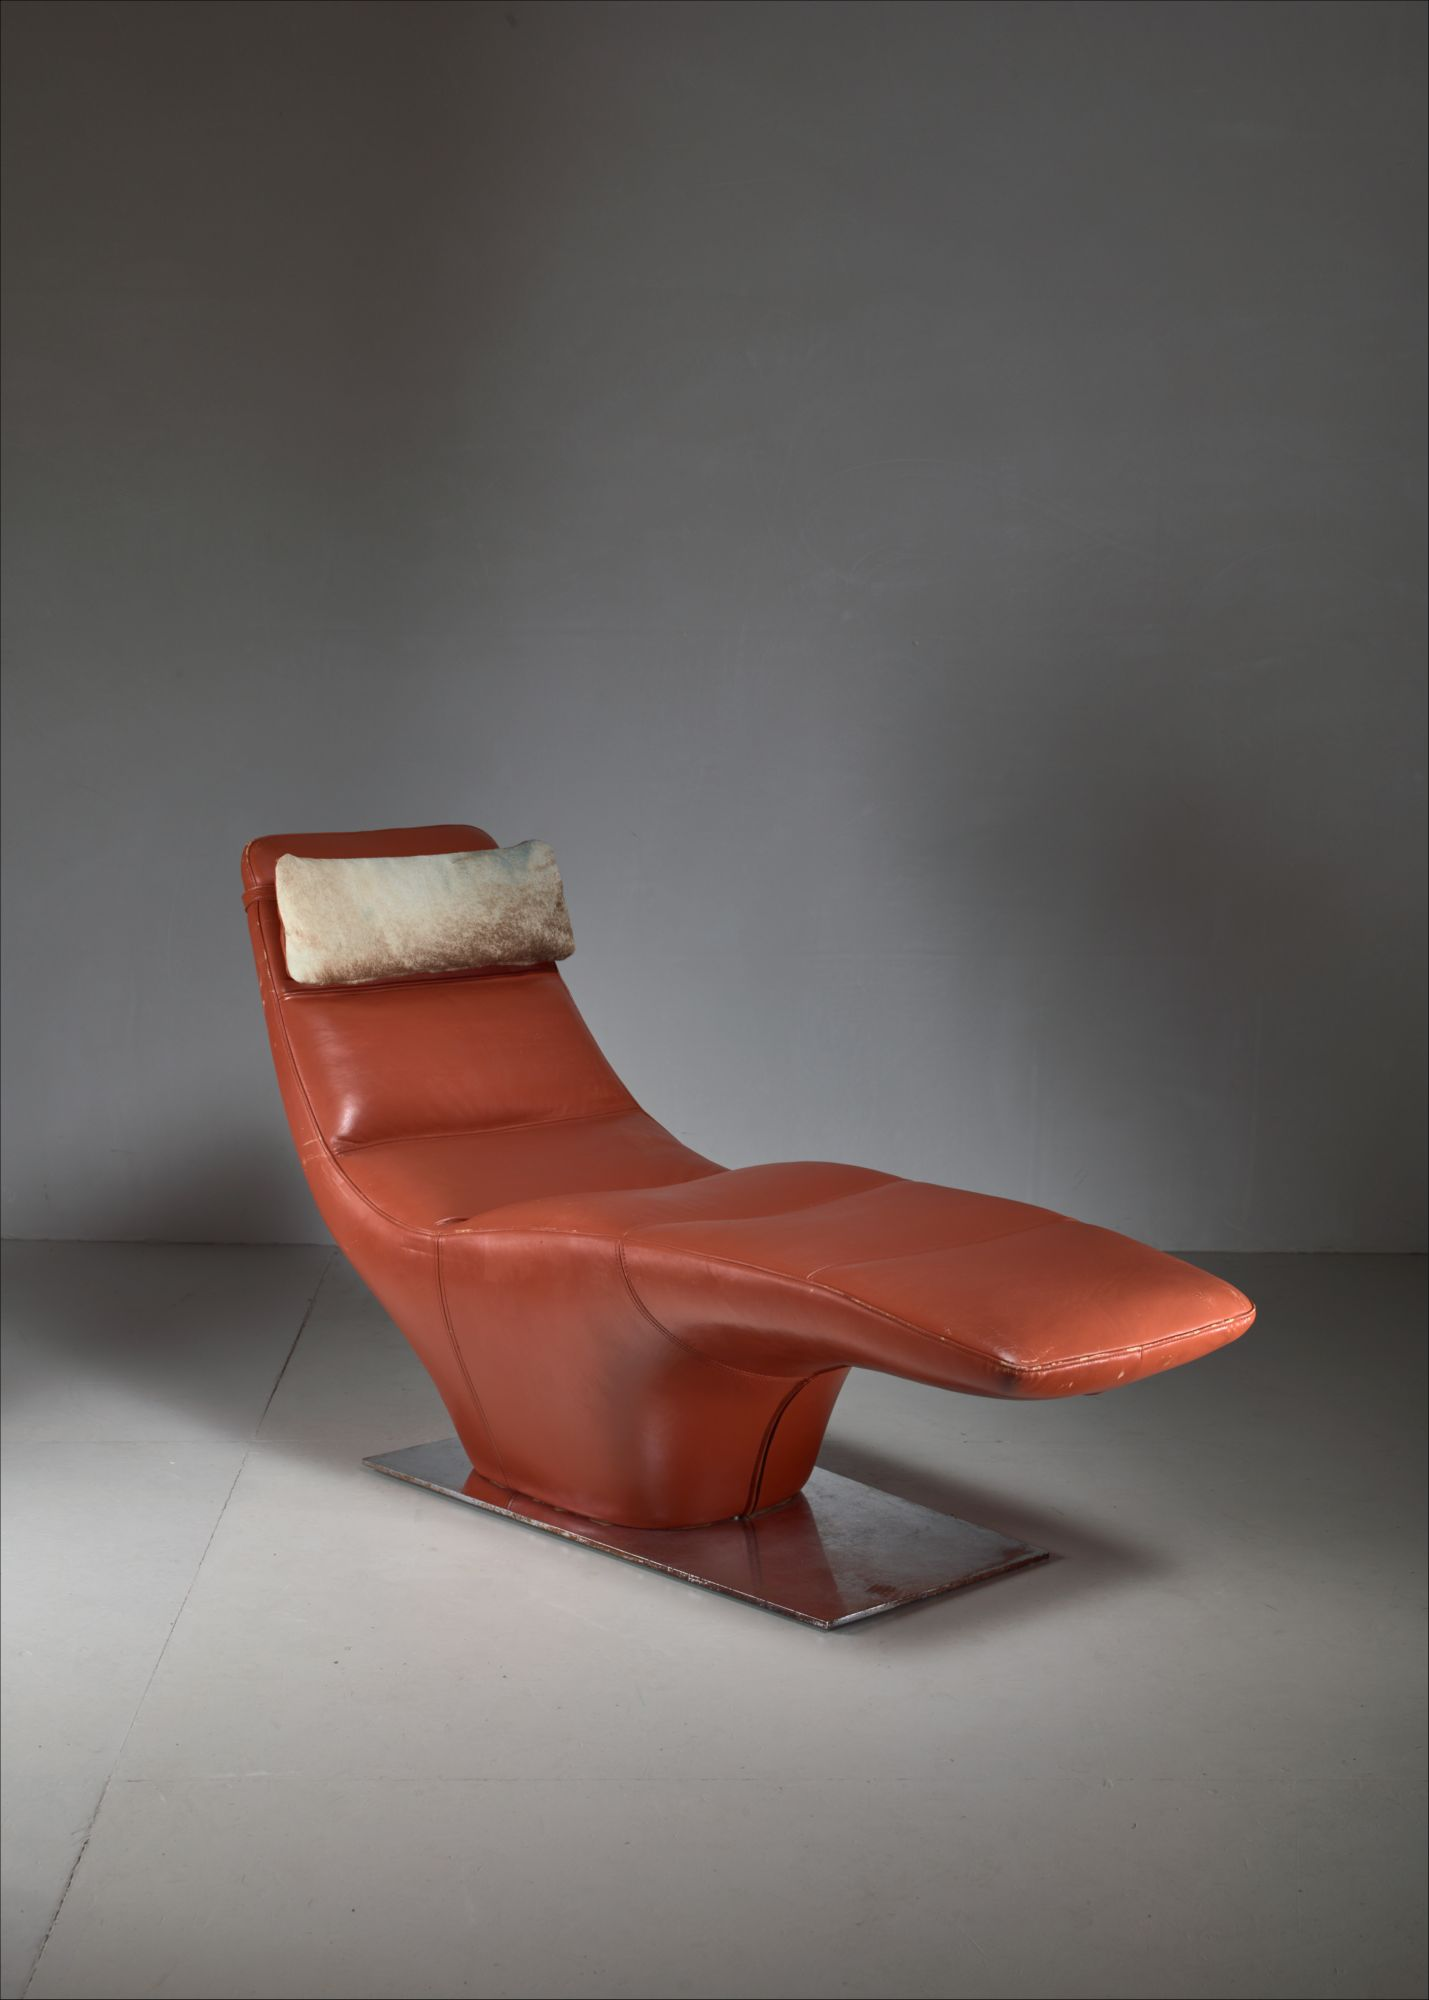 Incredible Leather Chaise Longue With Cowhide Pillow 1960S Evergreenethics Interior Chair Design Evergreenethicsorg